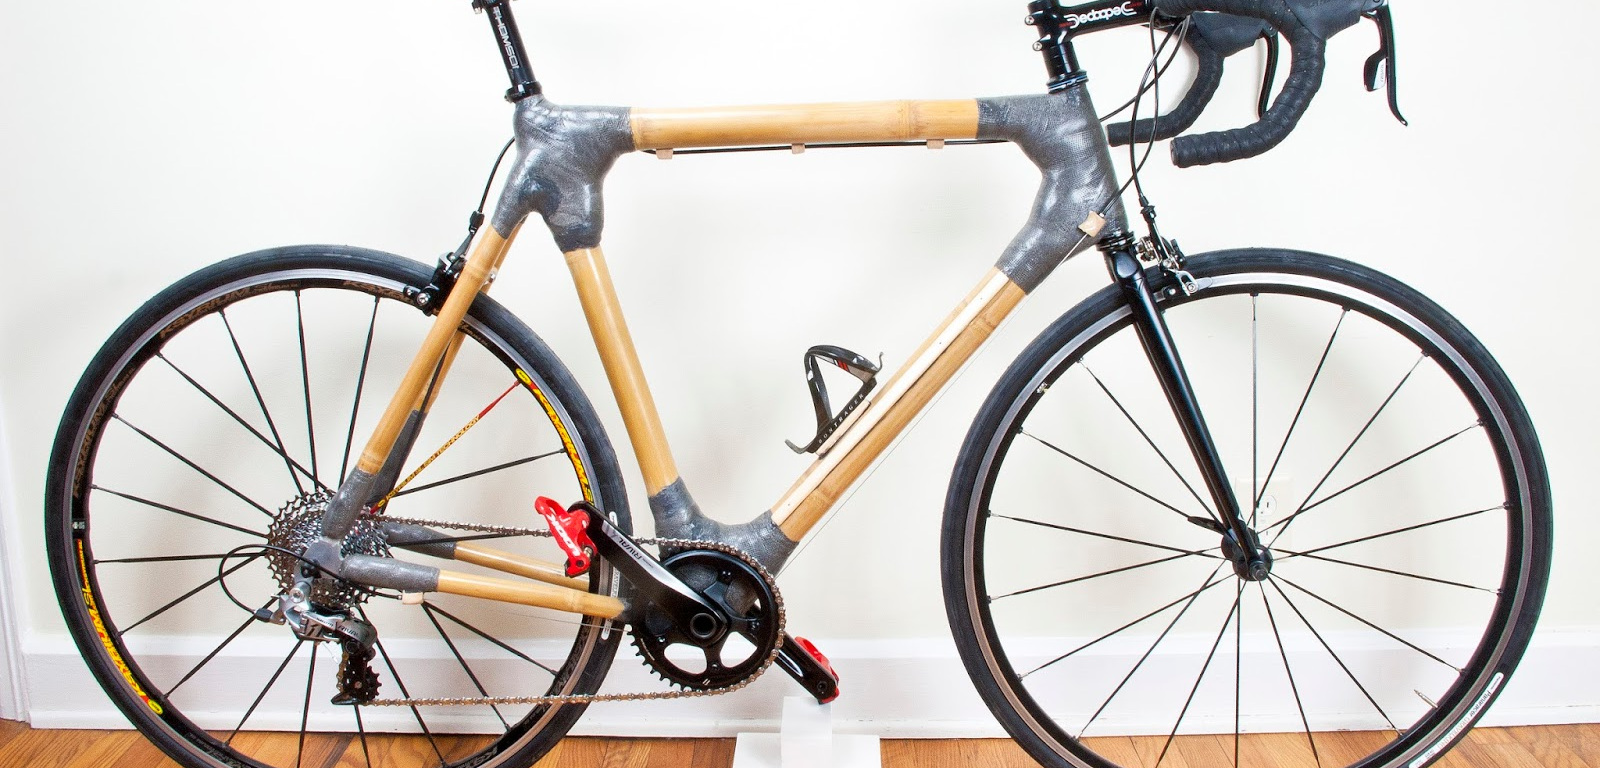 Bamboo Bikes and a Better Community